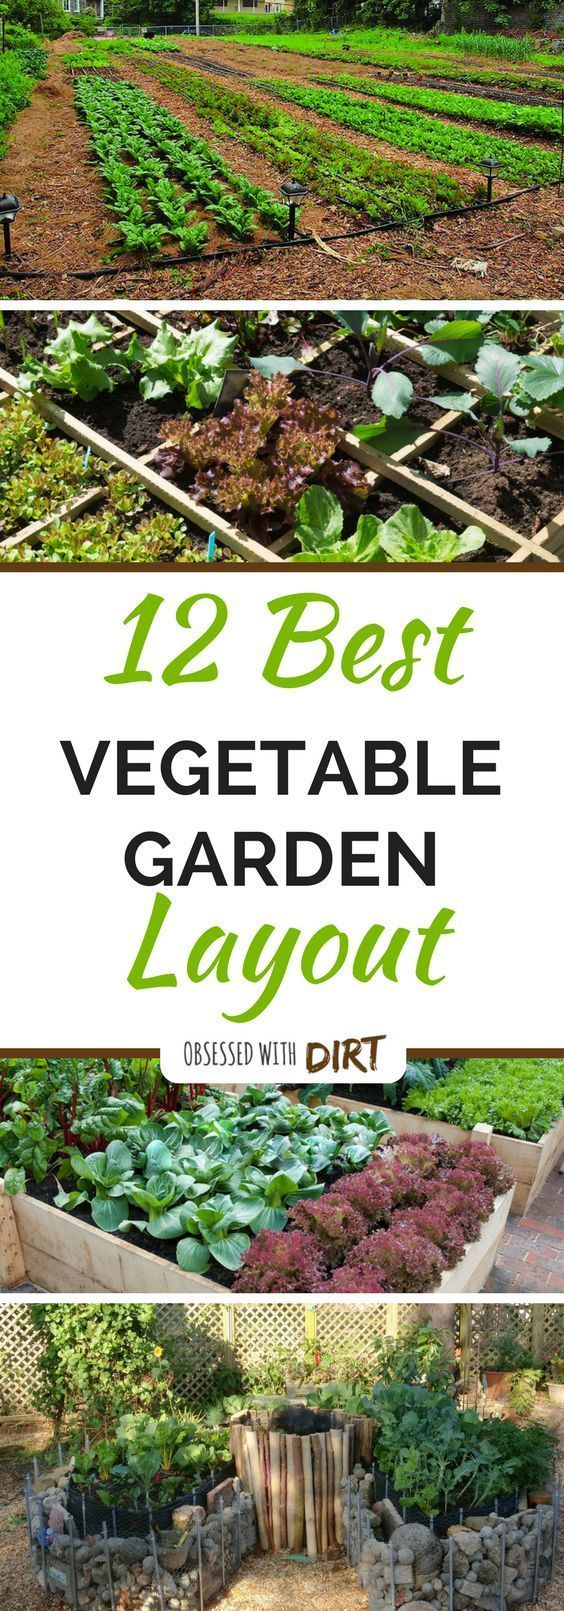 Designing the perfect vegetable garden layout isnt easy. There are so many things to consider! Your vegetables will need a lot of sun, water, nutrients and loving care to grow.